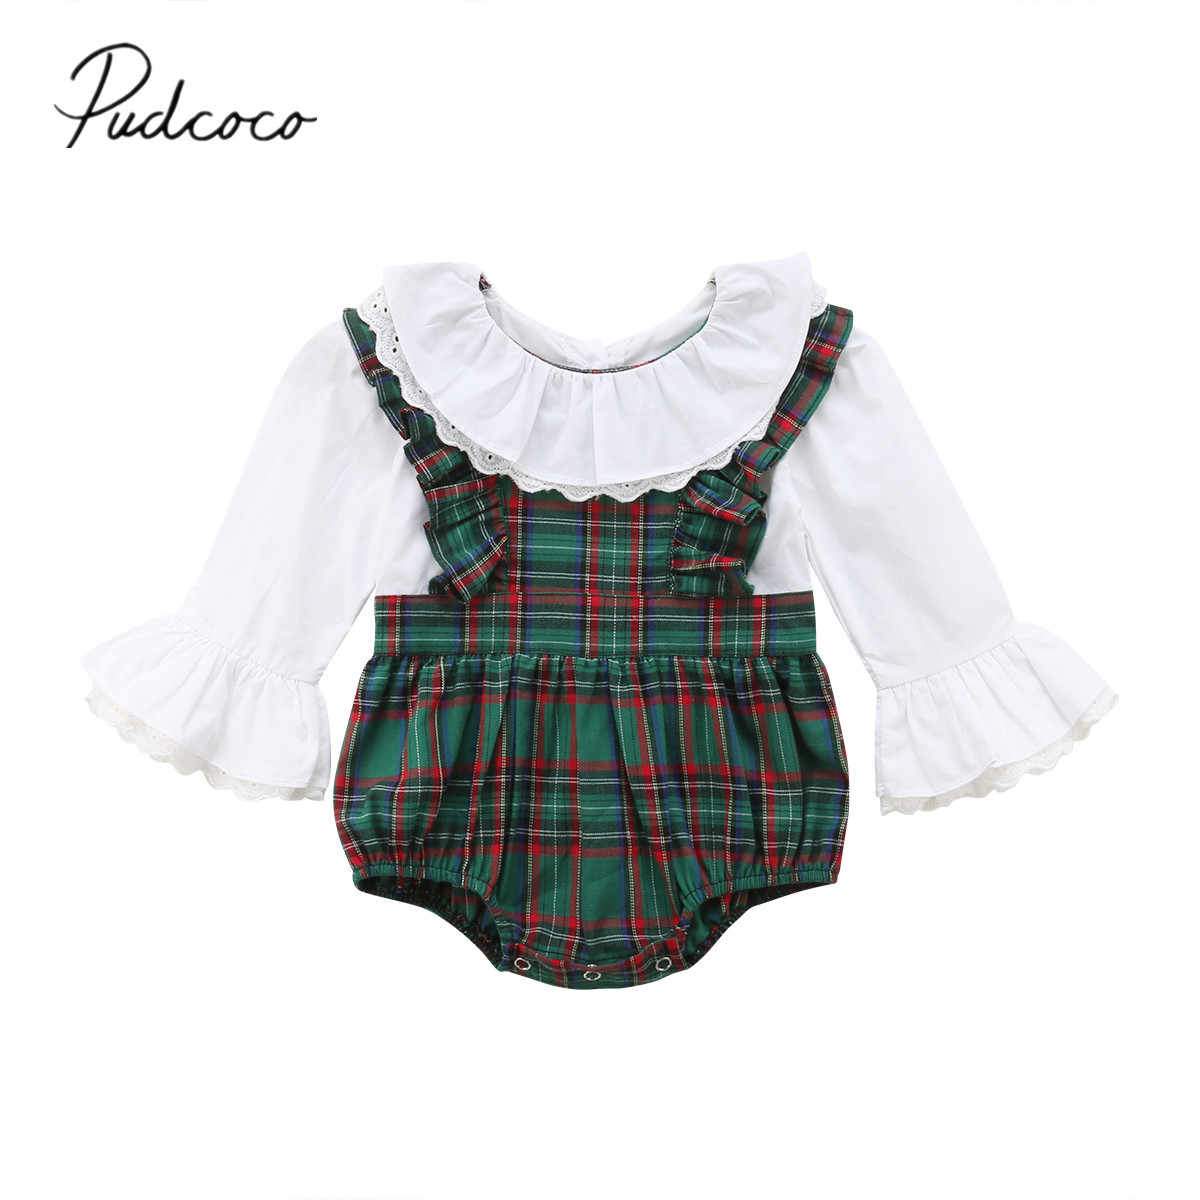 2018 Brand New 0-24 m Pasgeboren Baby Baby Meisjes Bodysuits Lange Flare Mouw Plaid Patchwork Ruches Jumpsuits Herfst playsuit